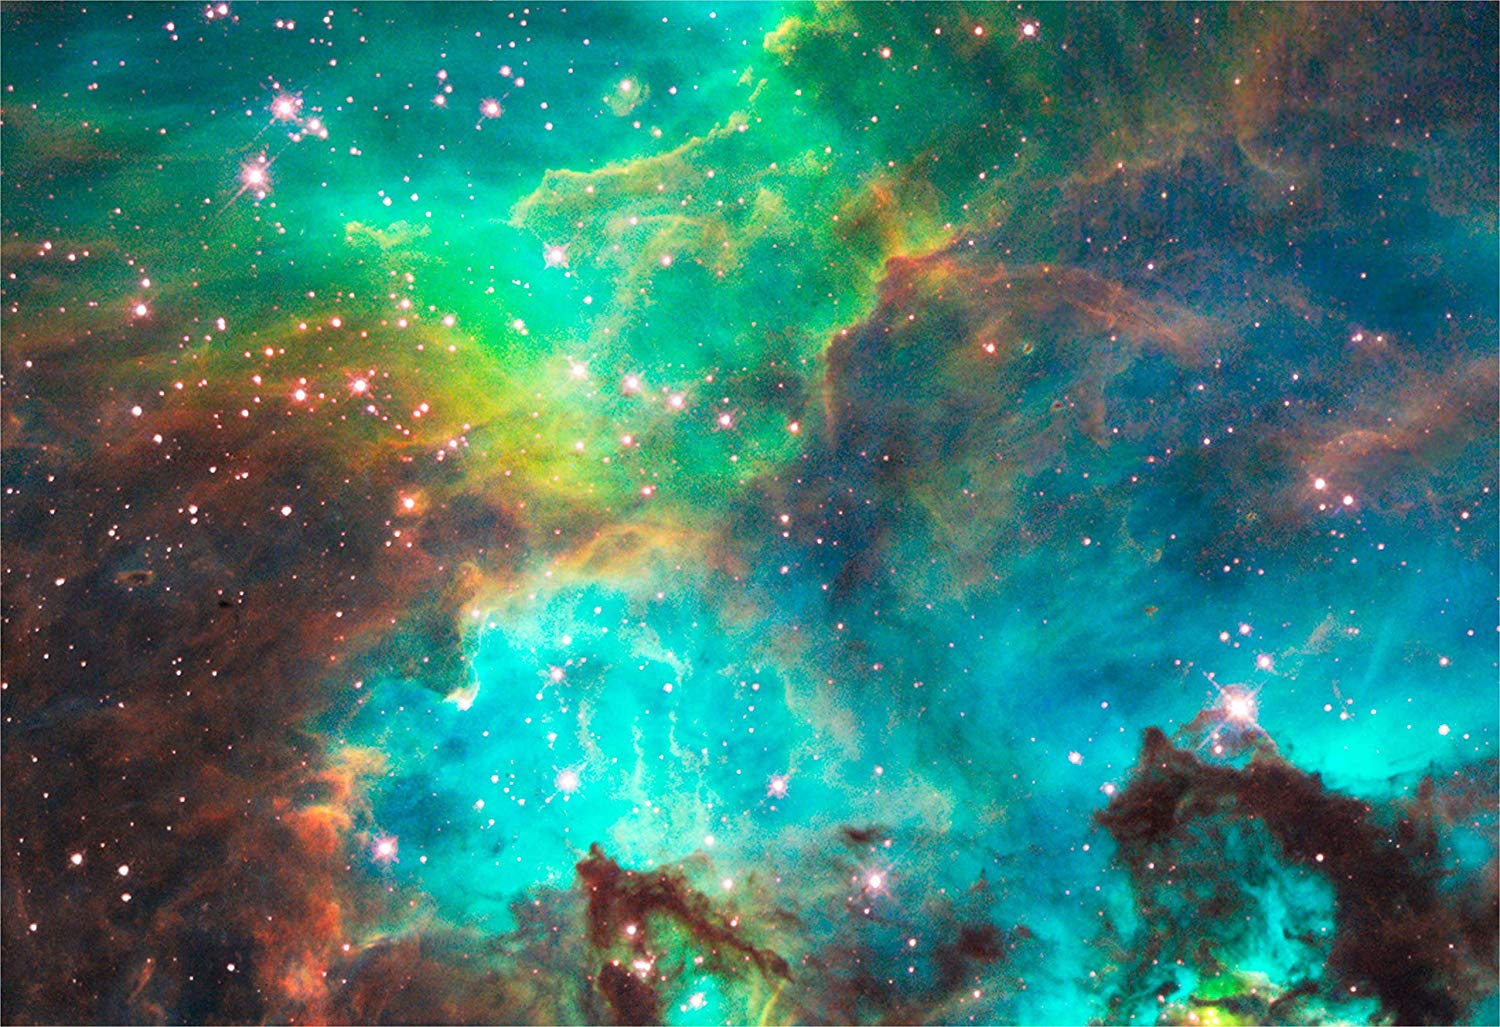 Star Cluster NGC 2074 in the Large Magellanic Cloud Image